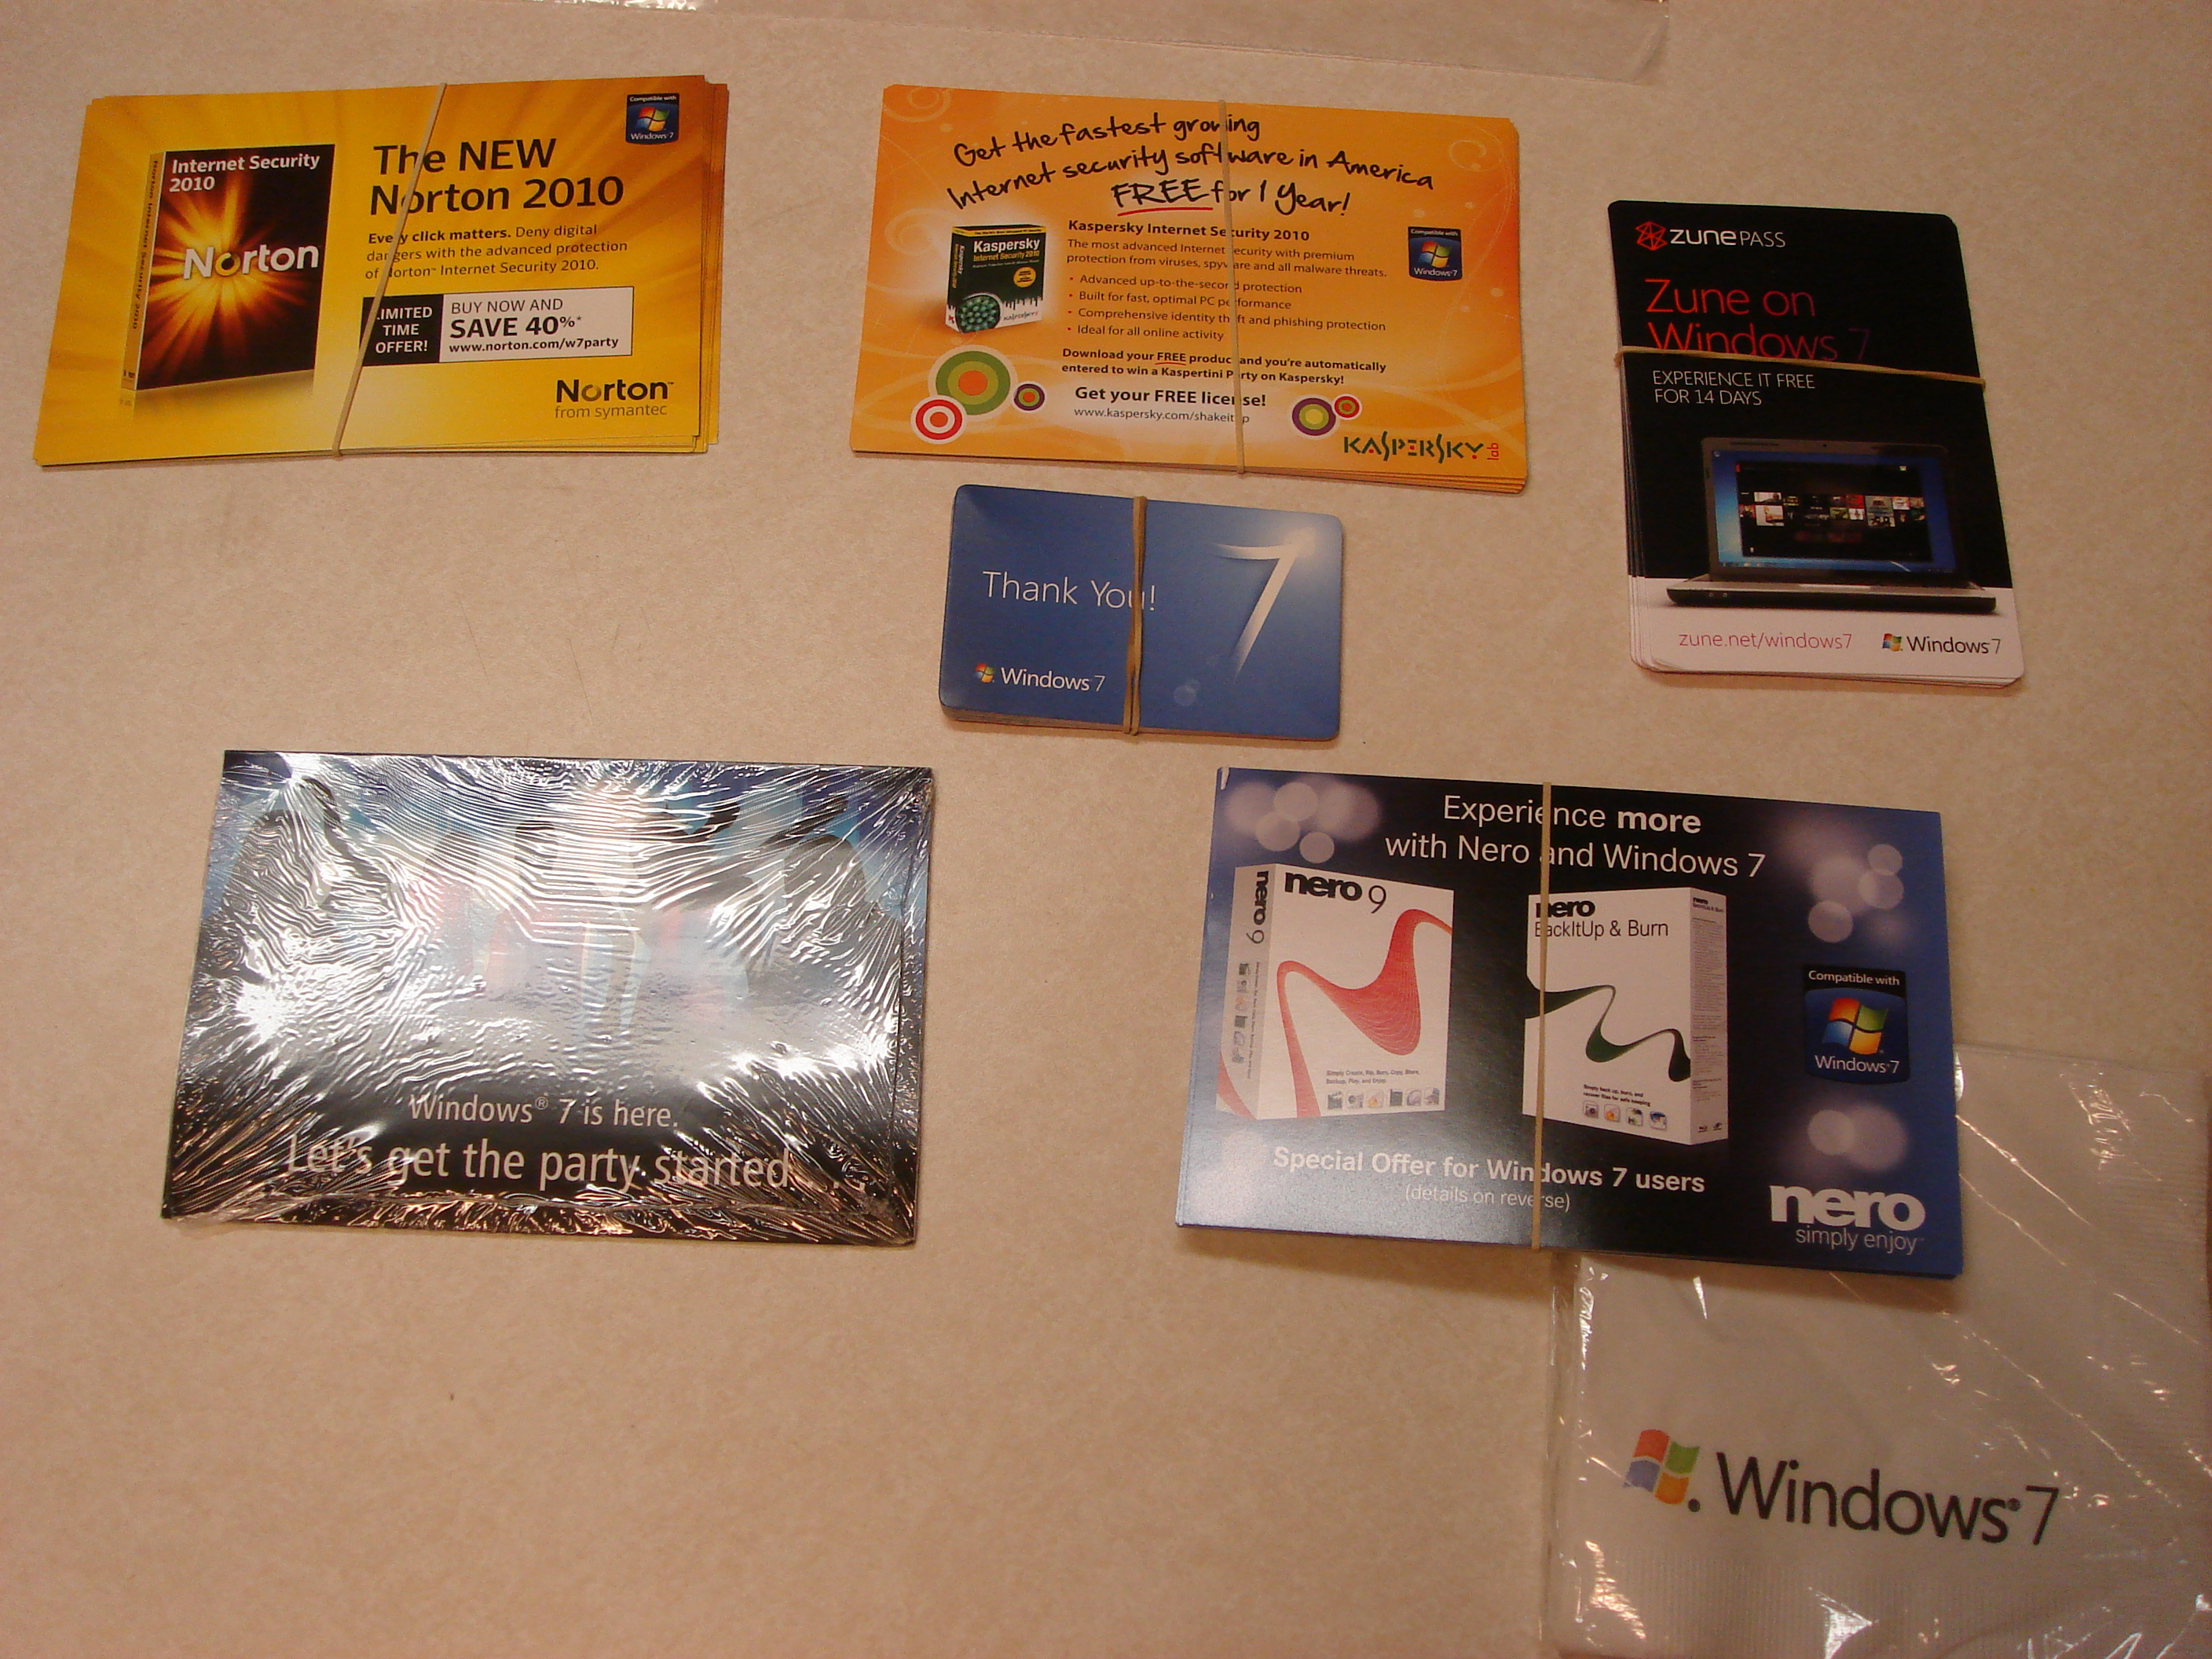 Windows 7 Promotional Offers